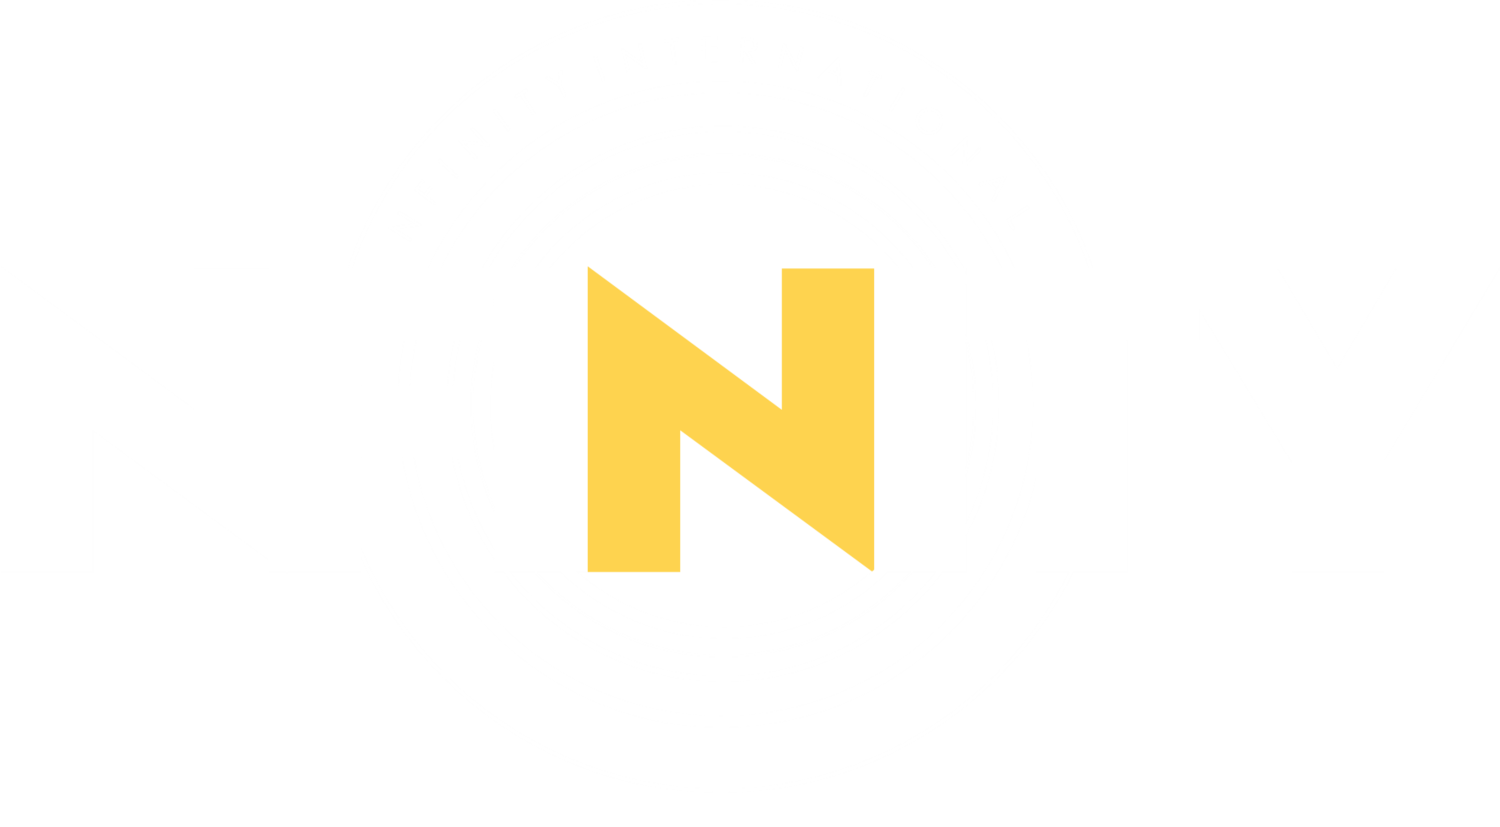 Nfinity International